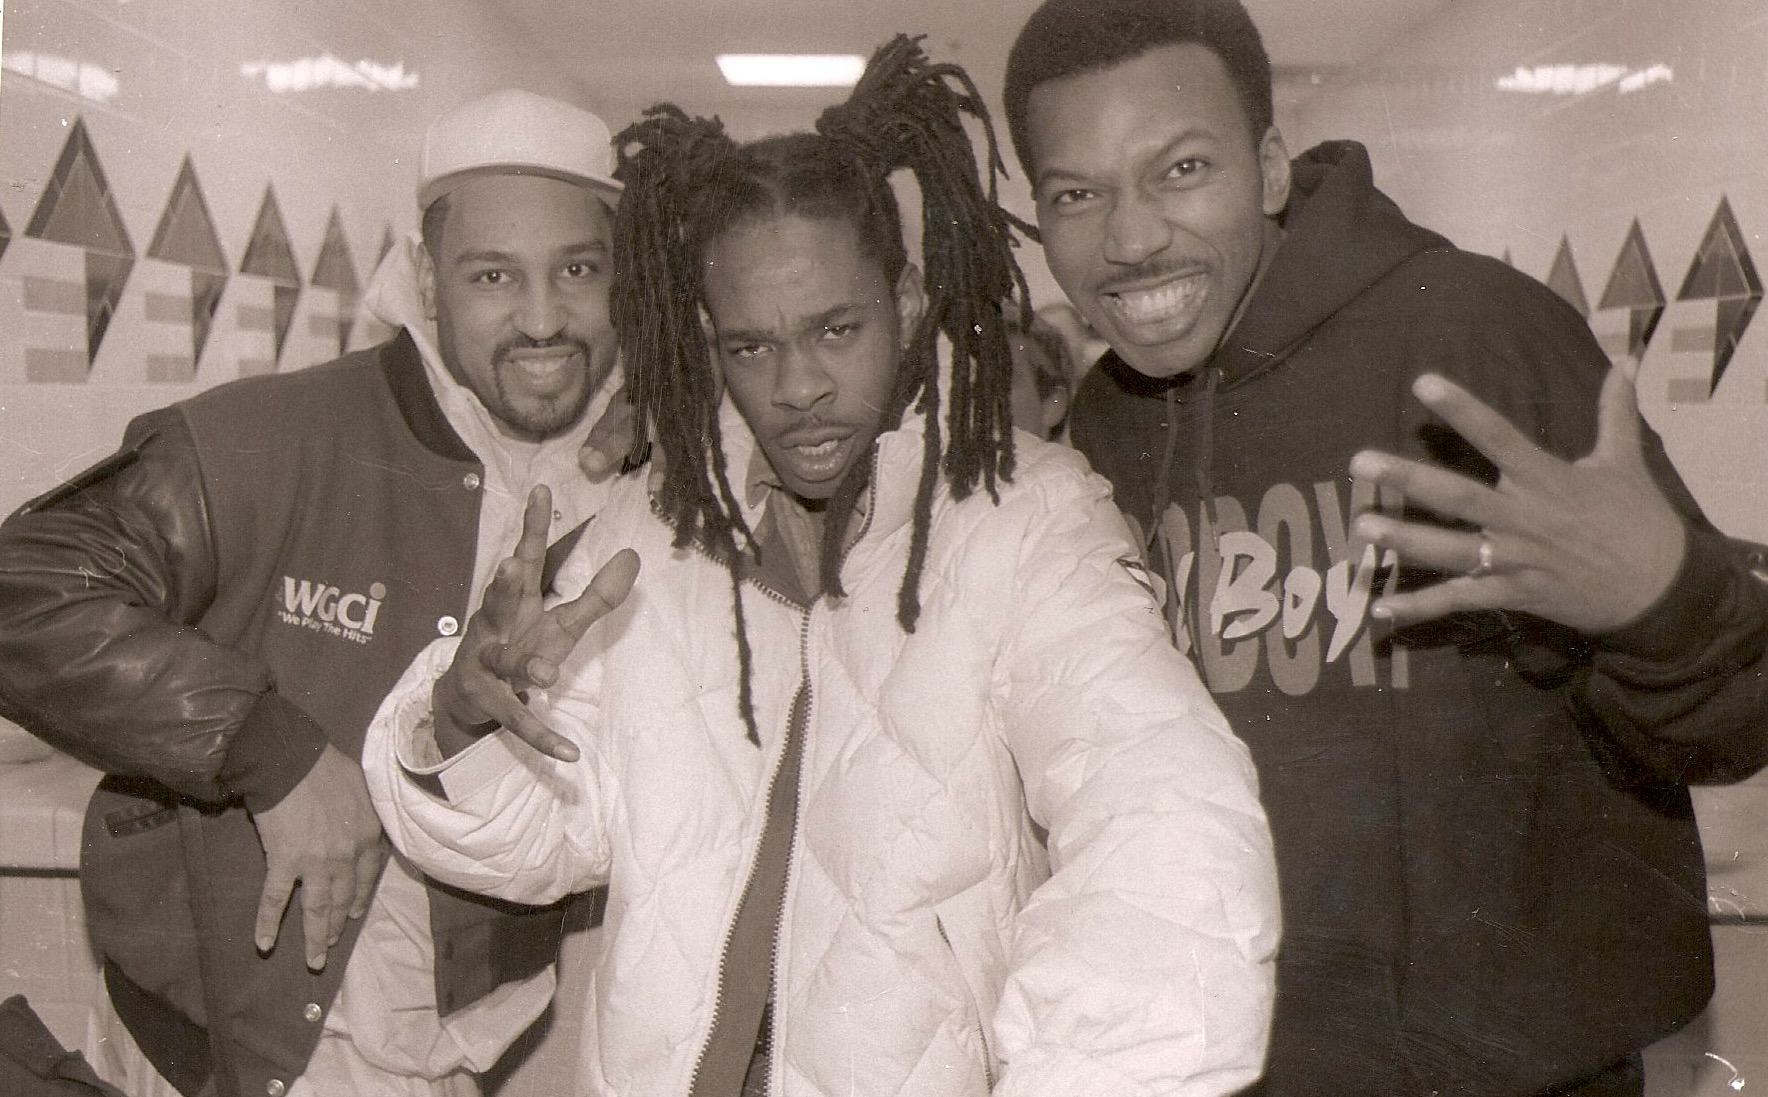 The Dizz and Mike Love with Busta Rhymes